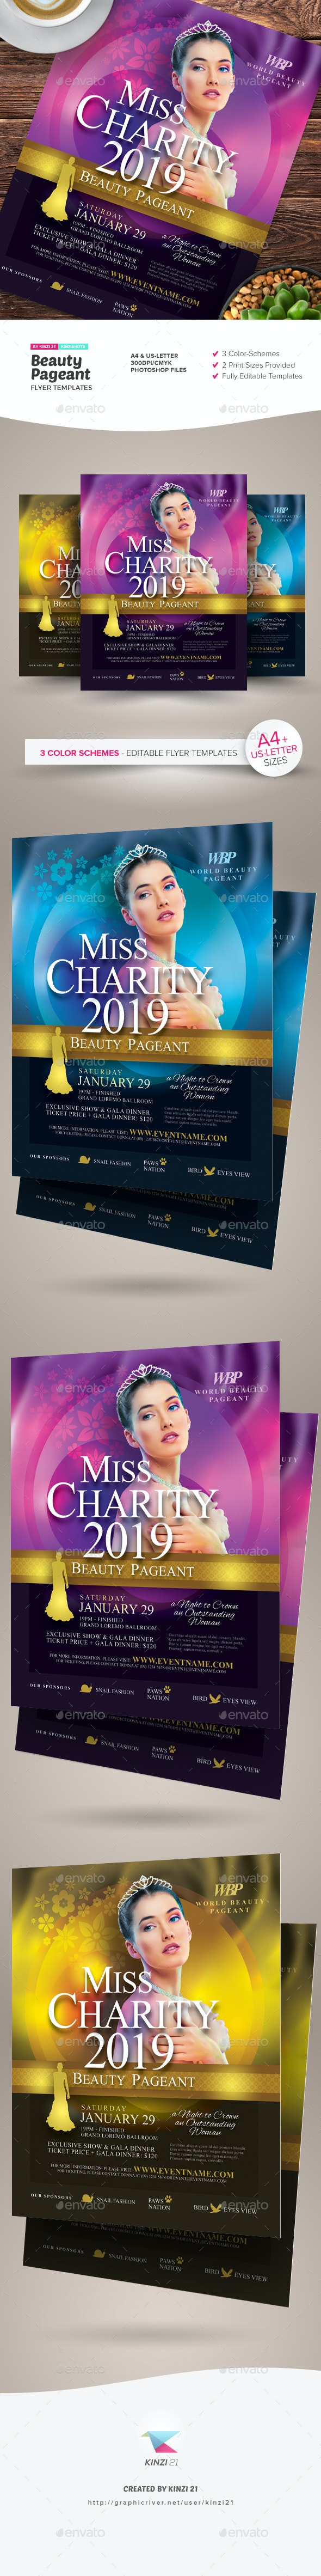 Beauty Pageant Flyer Templates - Miscellaneous Events